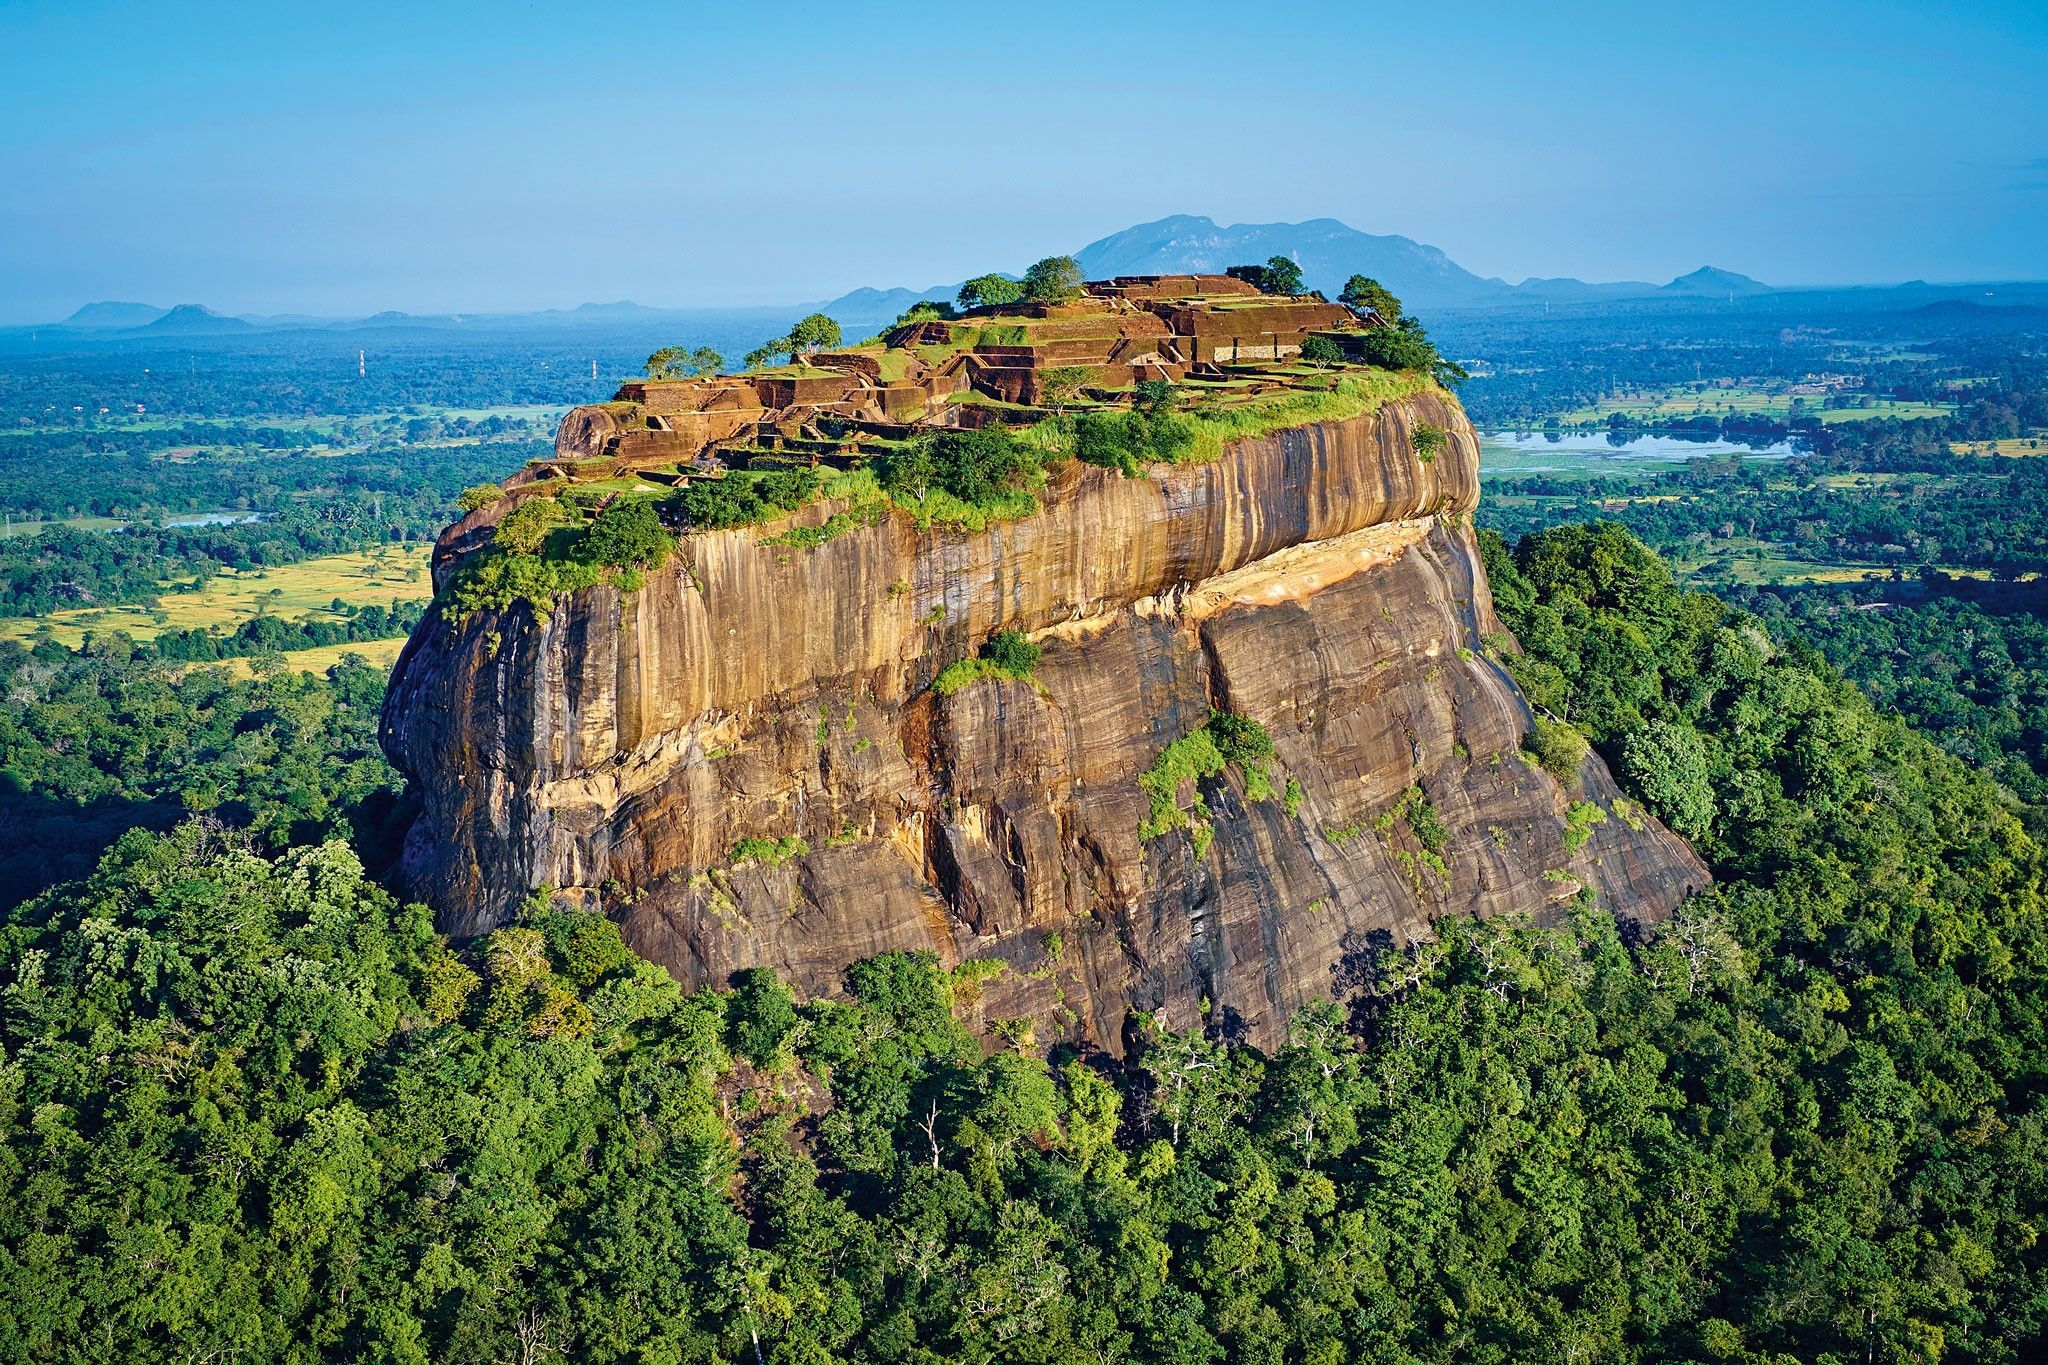 The 'Lion Fortress' of Sri Lanka was swallowed by the jungle | National Geographic